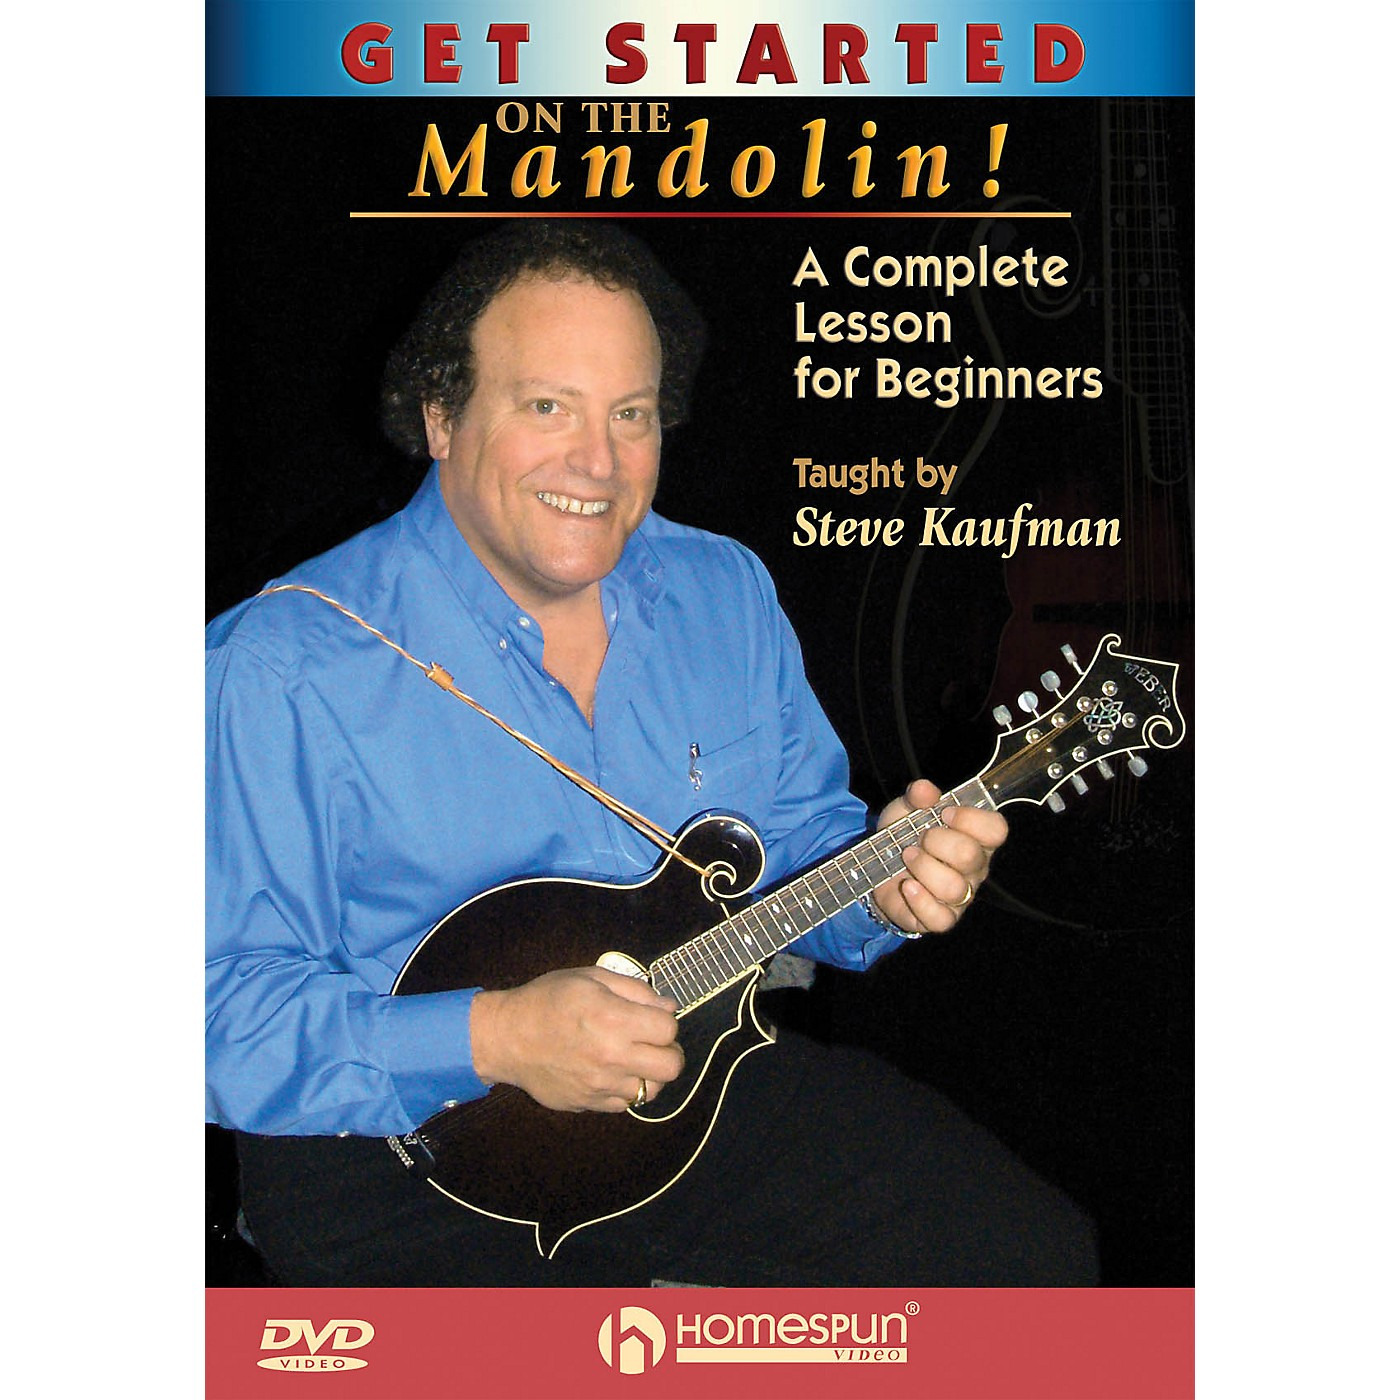 Homespun Get Started on the Mandolin! (A Complete Lesson for Beginners) Homespun Tapes Series DVD by Steve Kaufman thumbnail